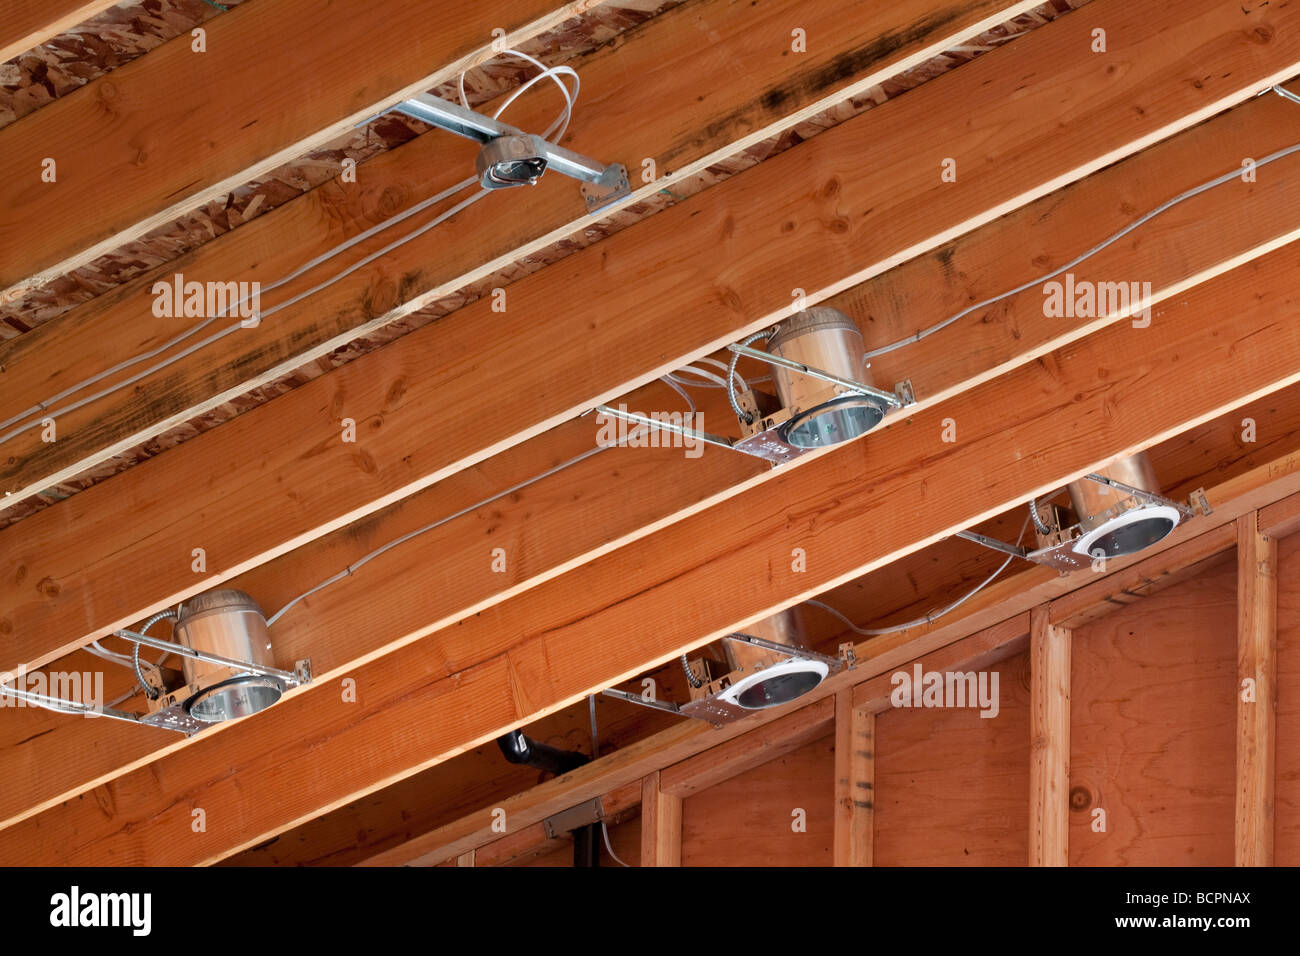 To Residential Construction Lighting Cans And Wiring Installed In The Rafters Of A Vaulted